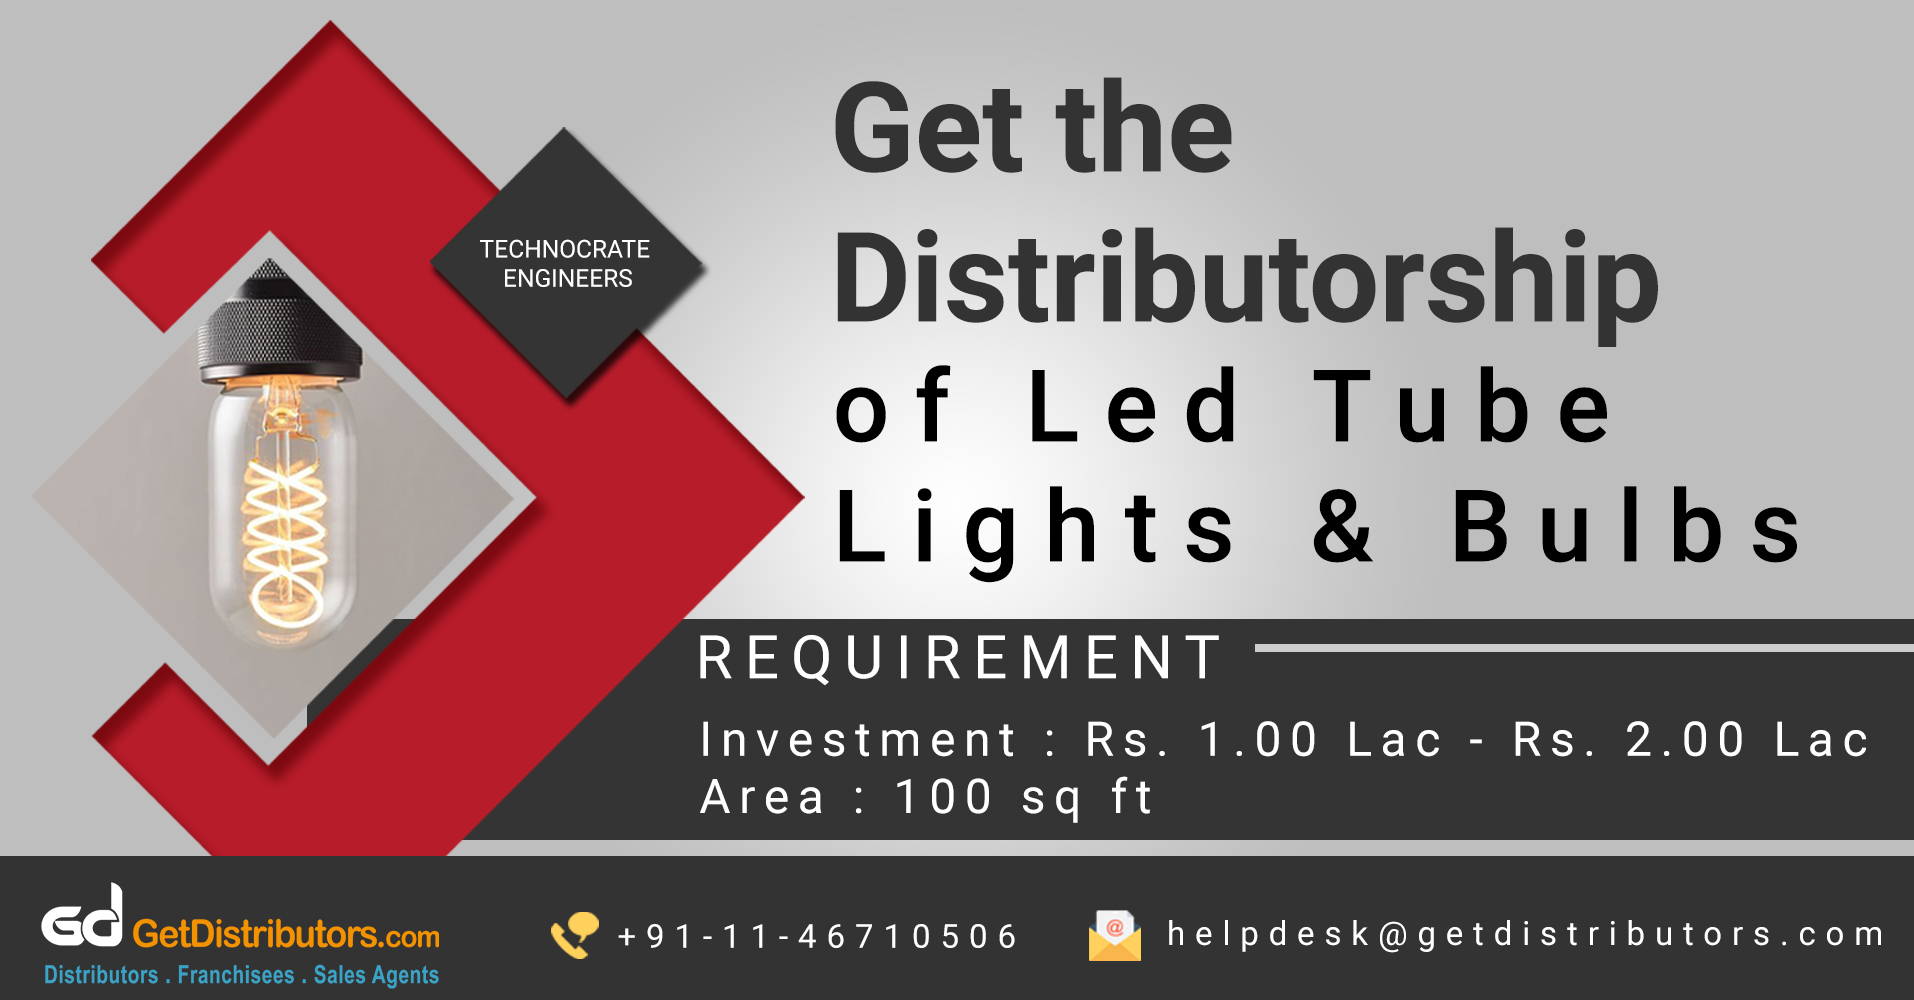 Reliable Lighting Products And Accessories Distributorship At Attractive Costs